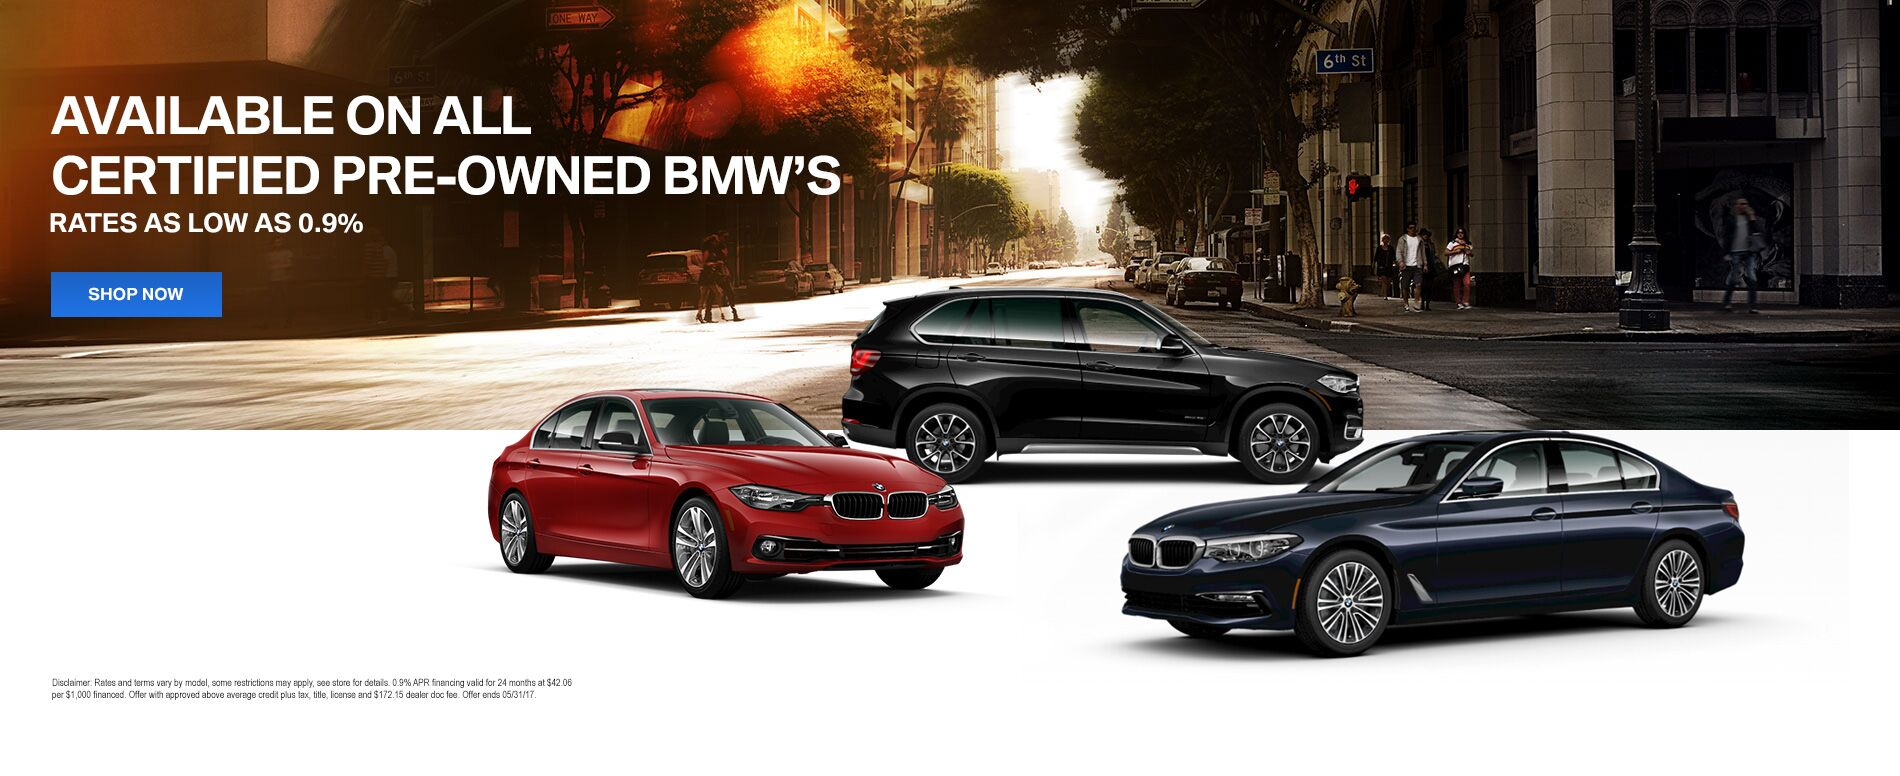 Certified Pre-Owned Models